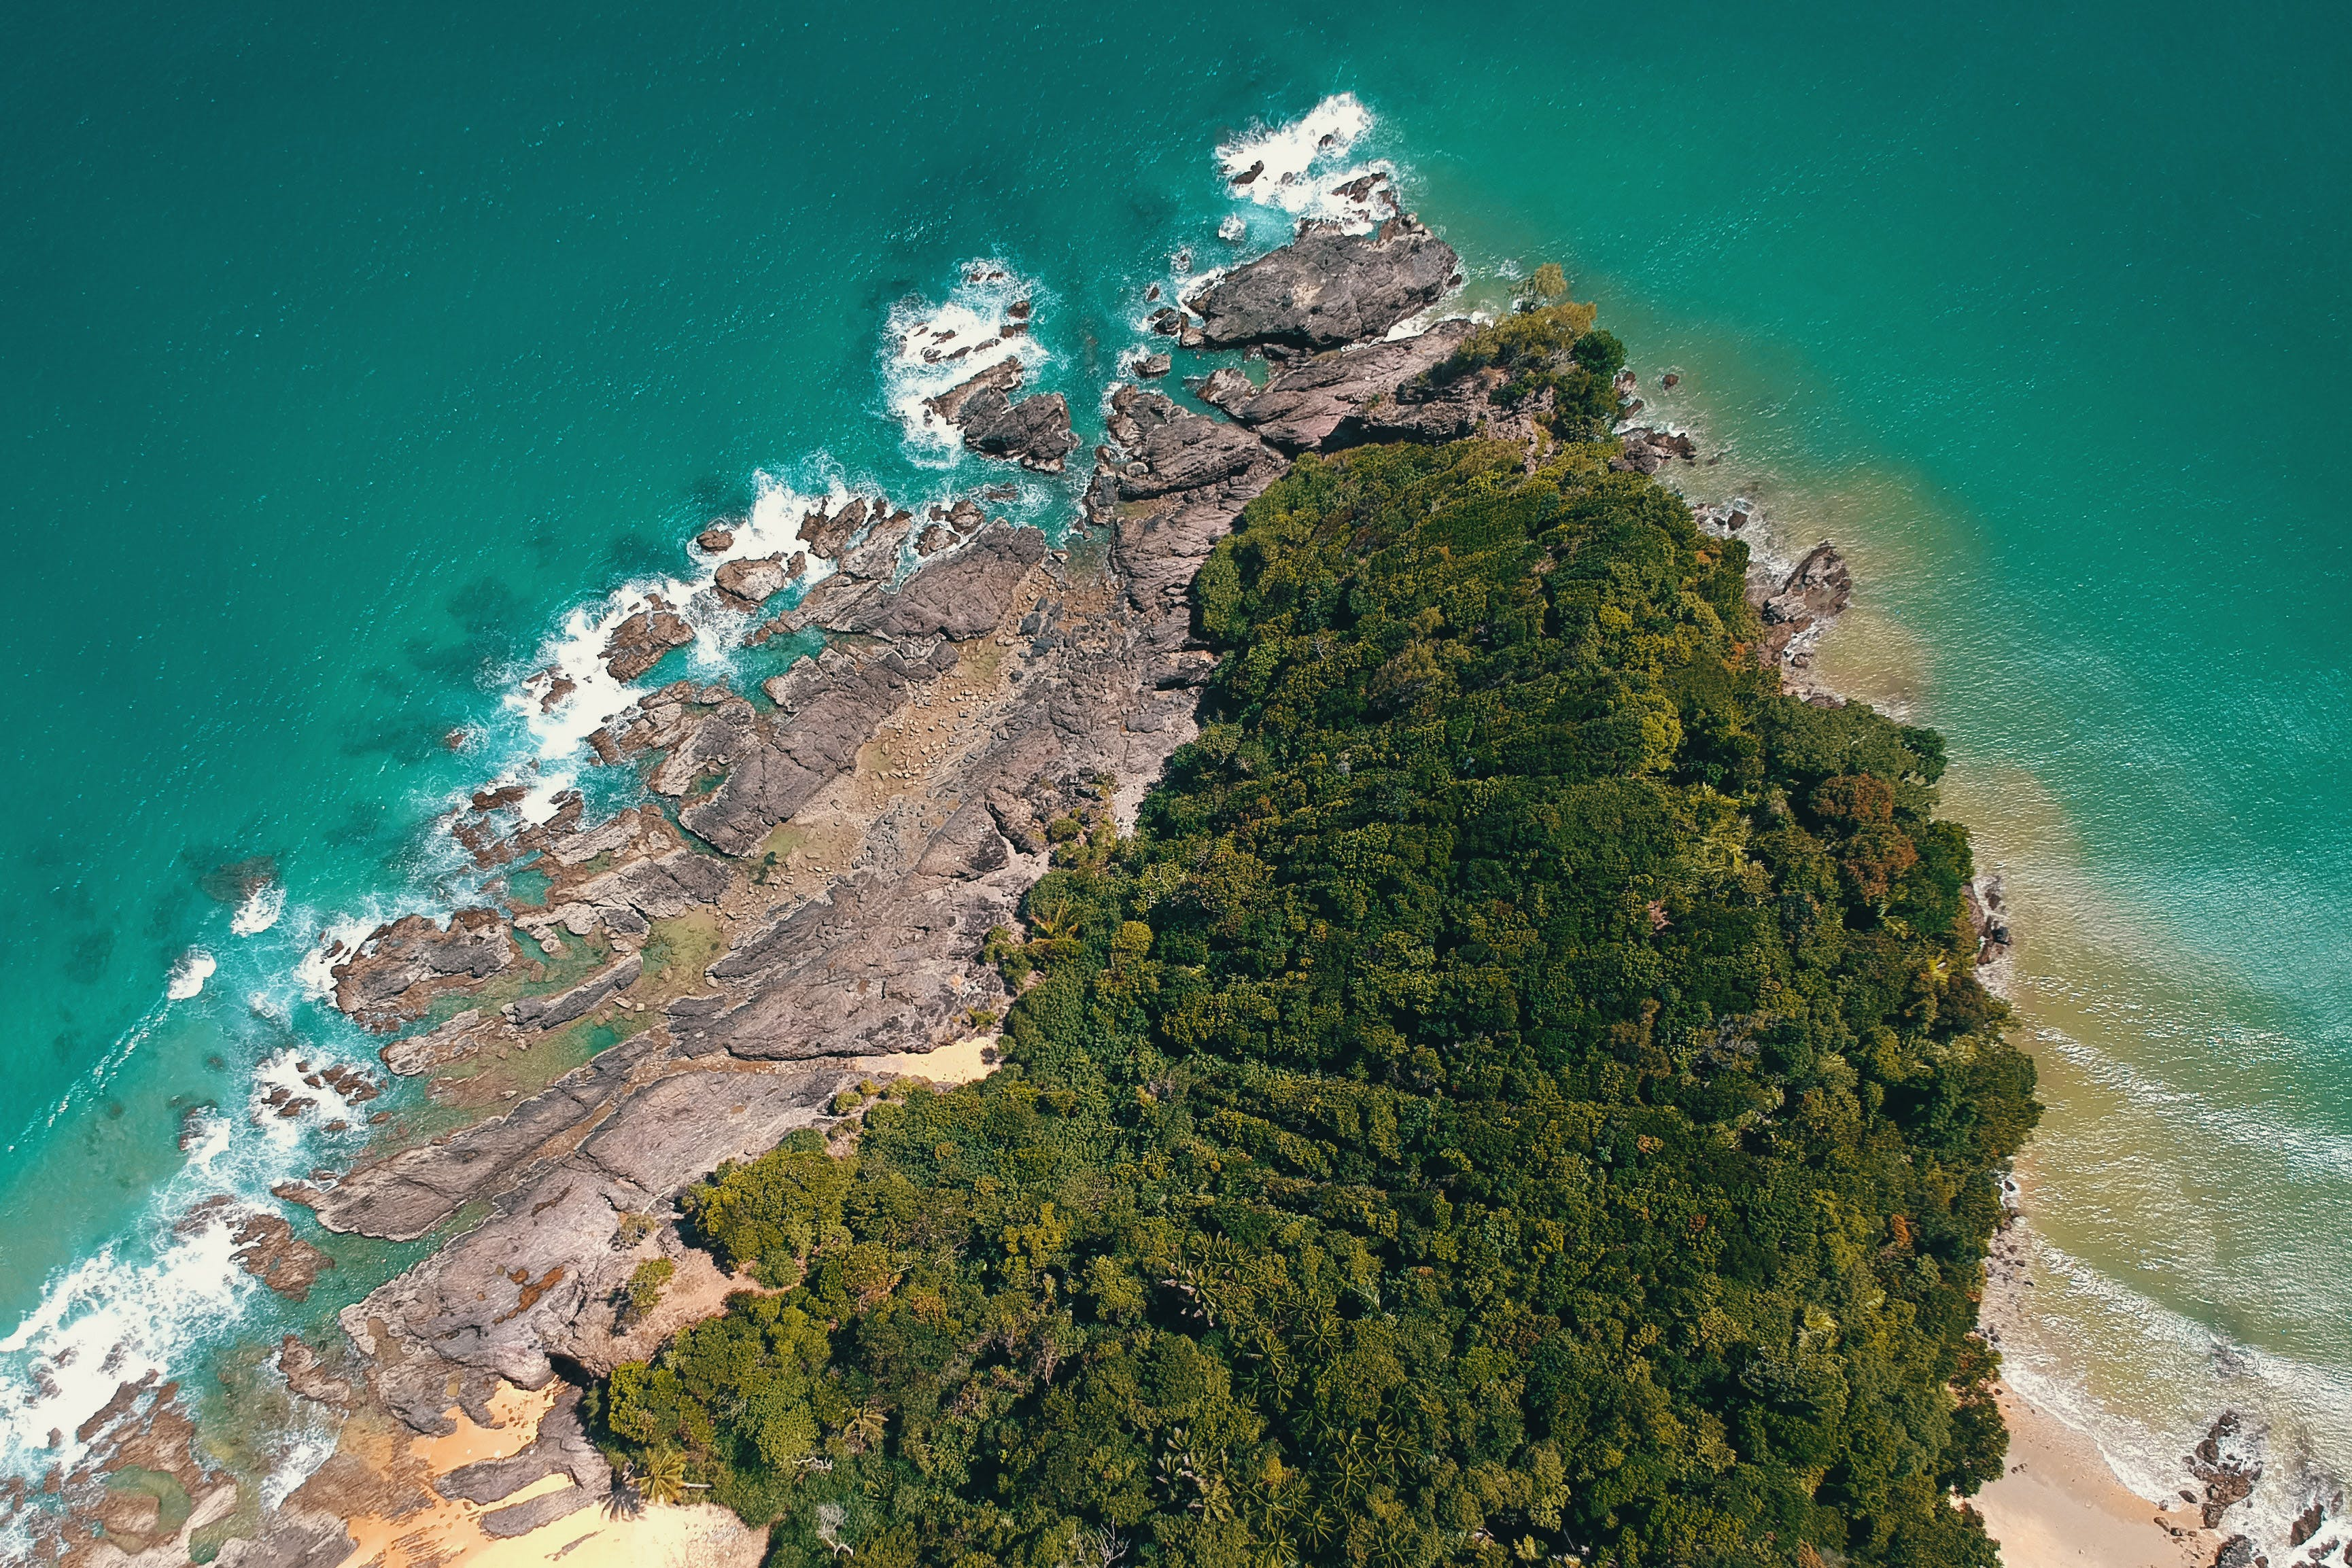 Aerial Photography of Island and Sea